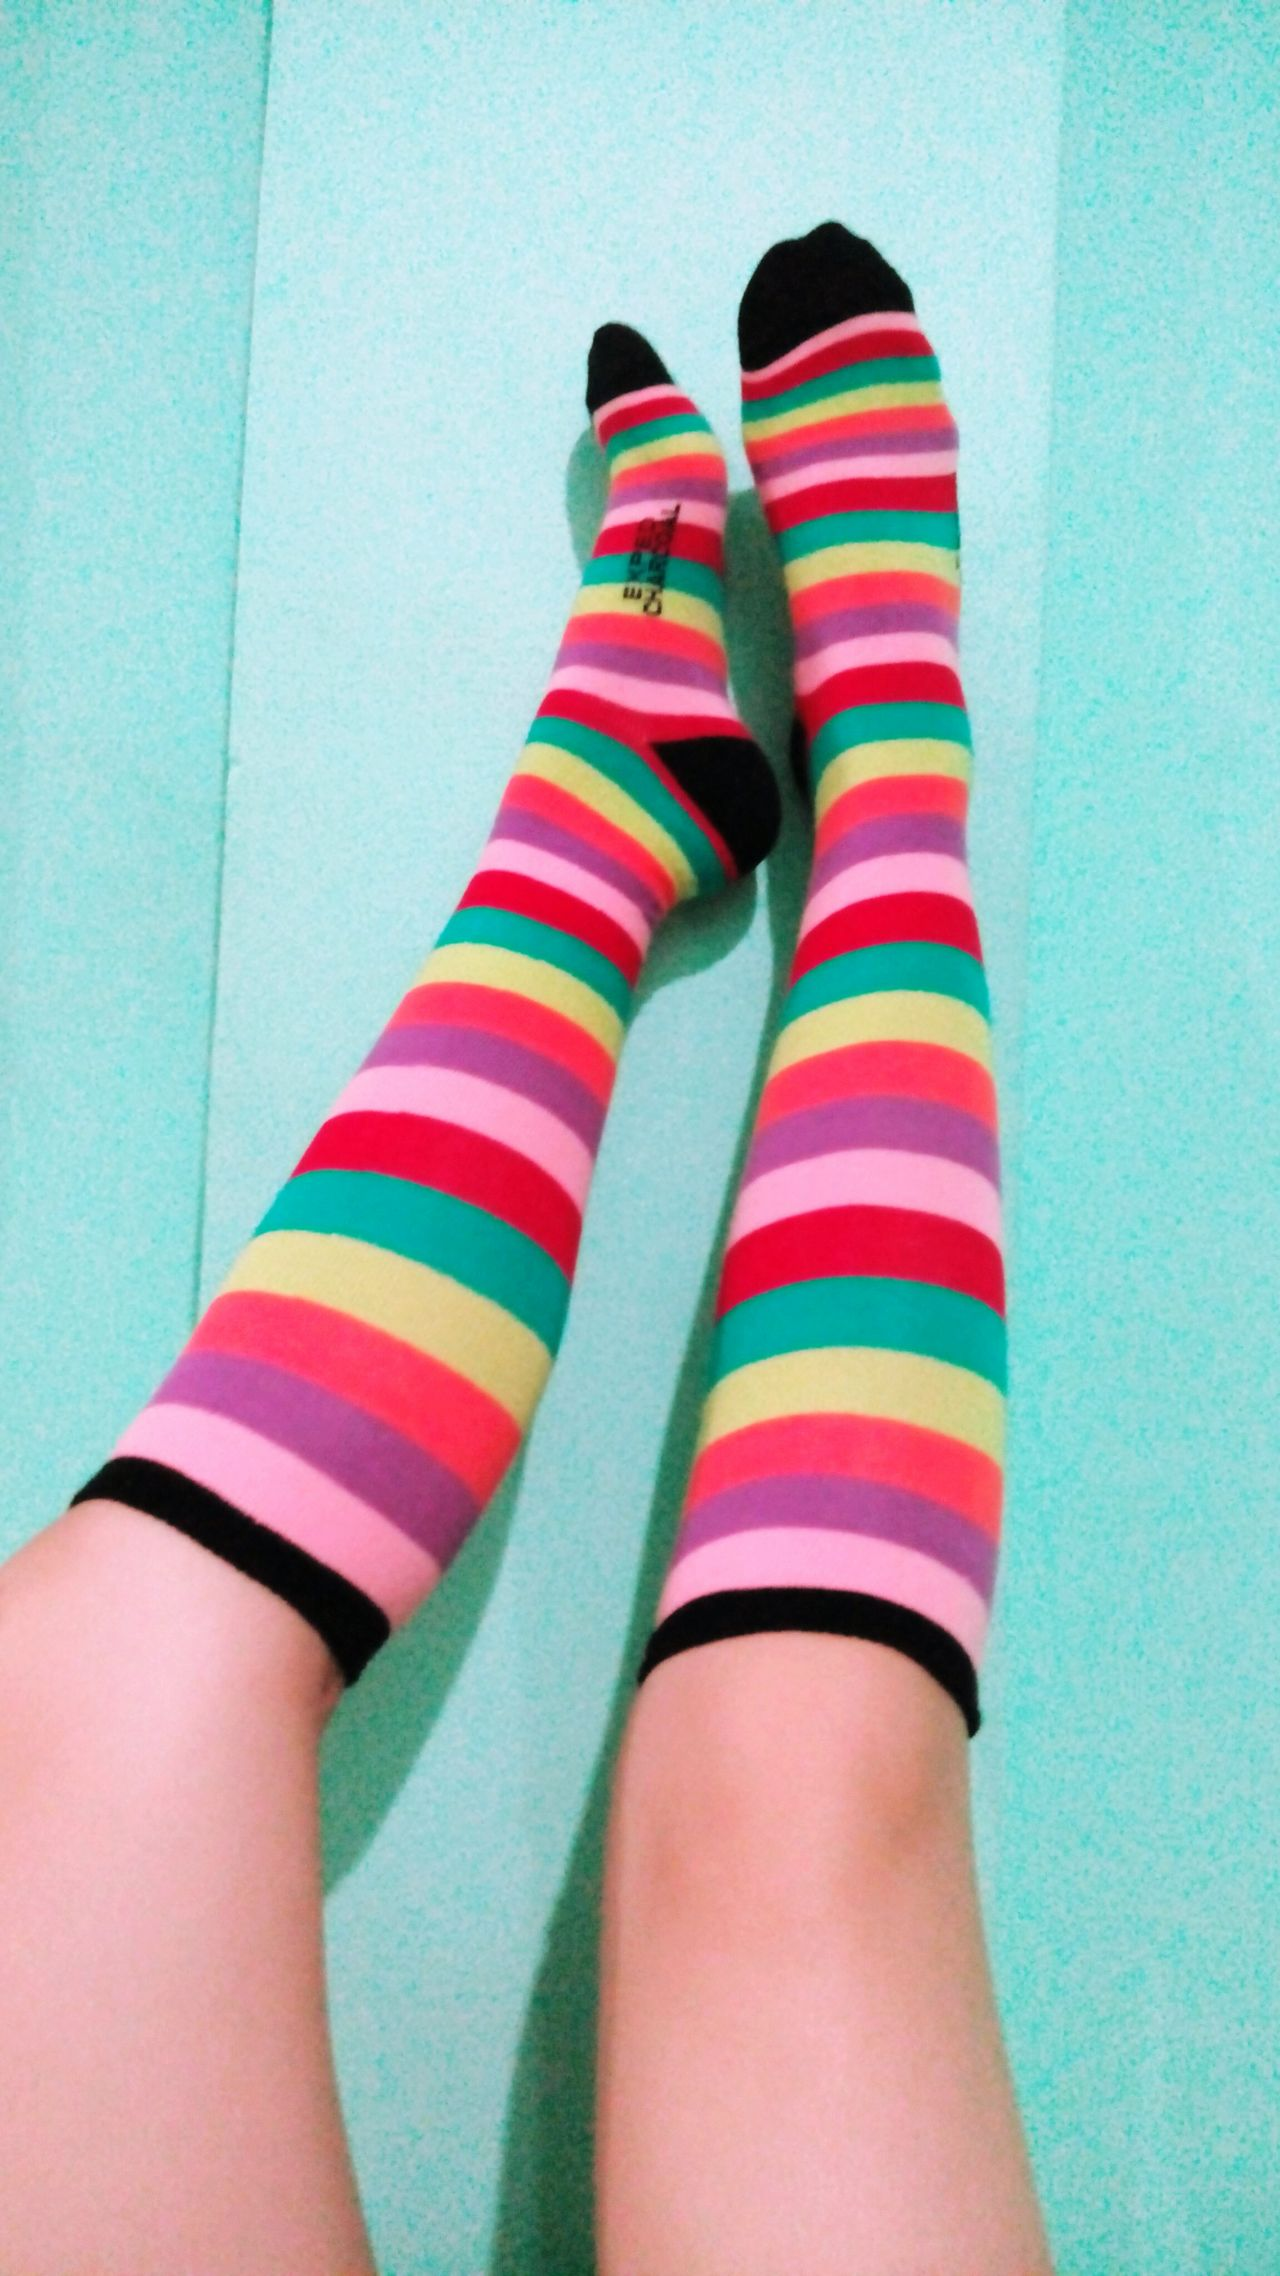 Legs Legs Up Socks Colorful Art Creativity Colorful Socks Model Type Photography Camera Phone Long Legs Neon Life